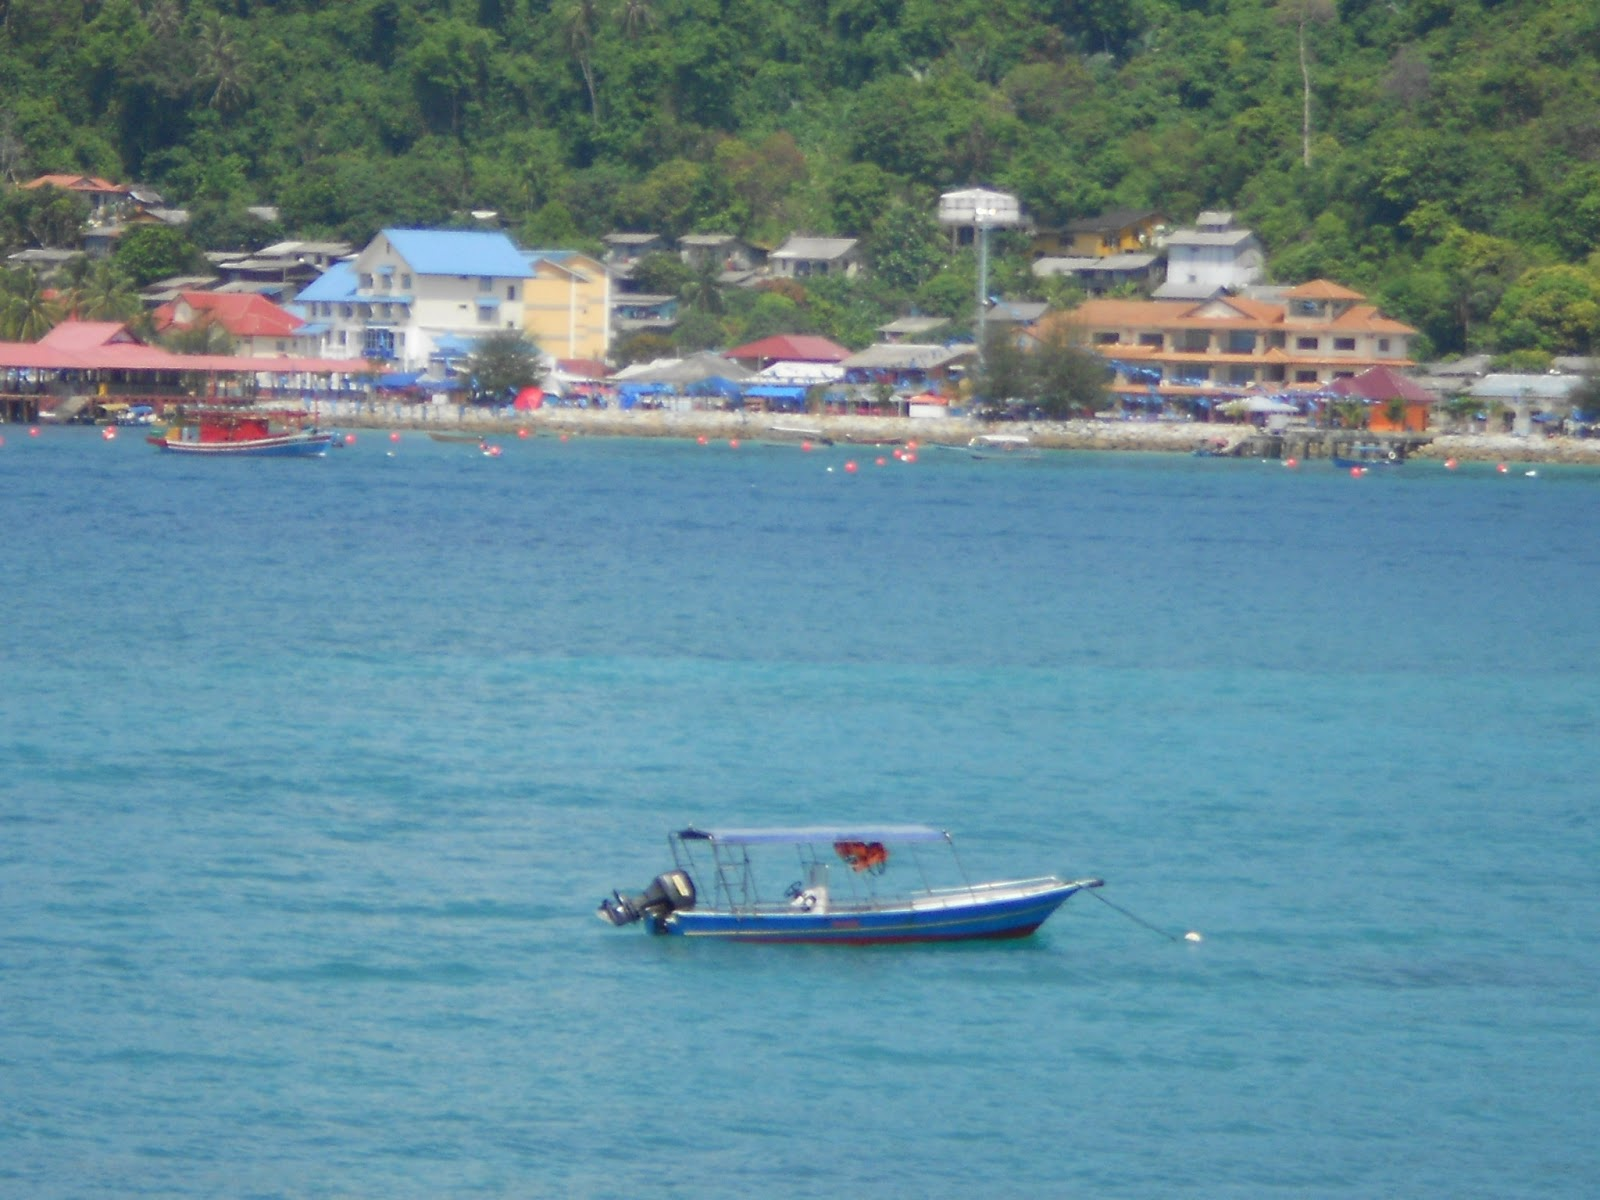 holiday at pulau perhentian 3days 2night perhentian package  small island & 3 days 2 nights snorkeling and free & easy holiday packages in perhentian  pulau perhentian.